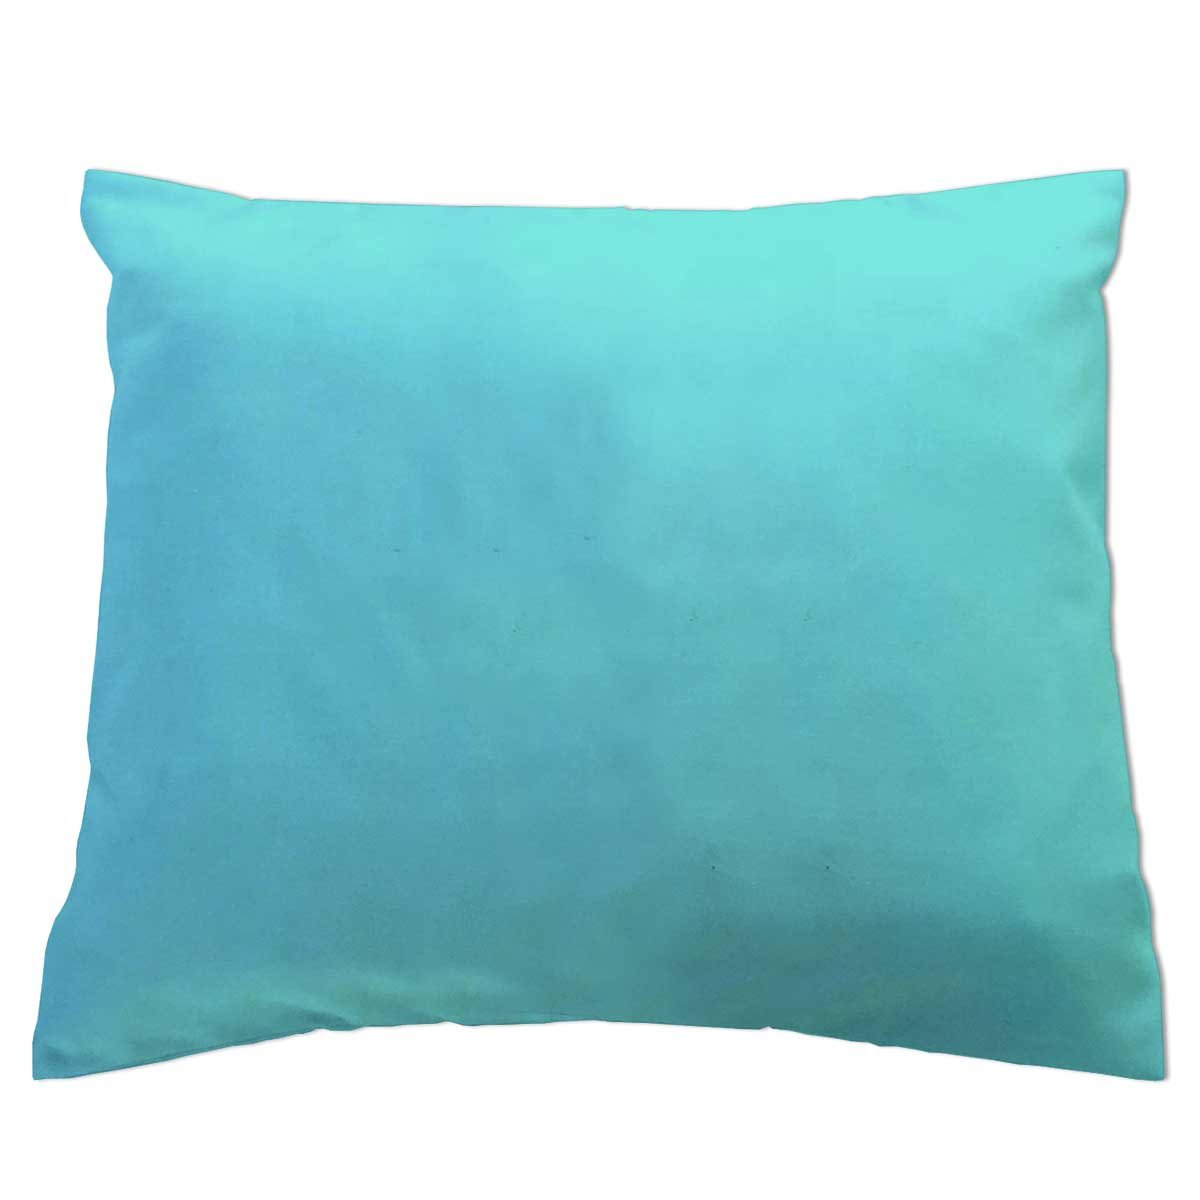 SheetWorld - Baby Pillow Case - Percale Pillow Case - Light Solids - Aqua - Made In USA by SHEETWORLD.COM